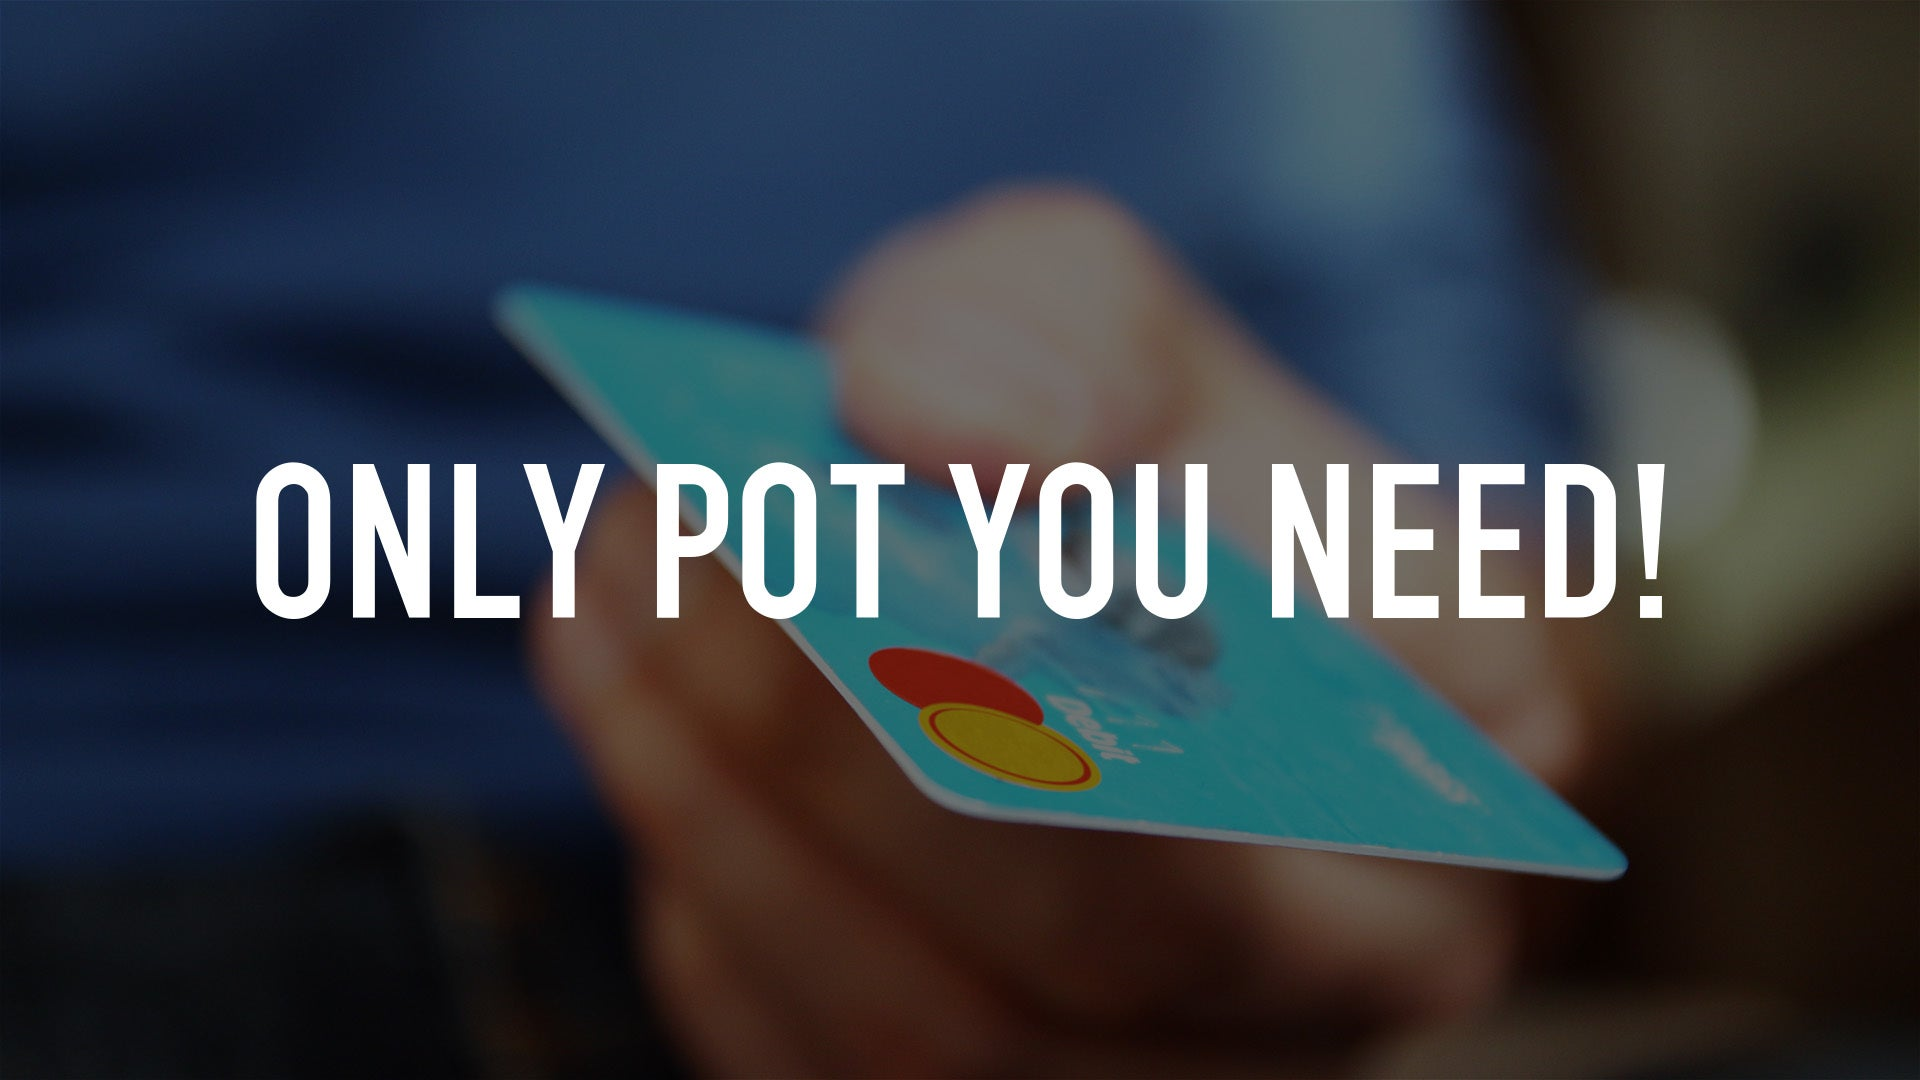 Only Pot You NEED!